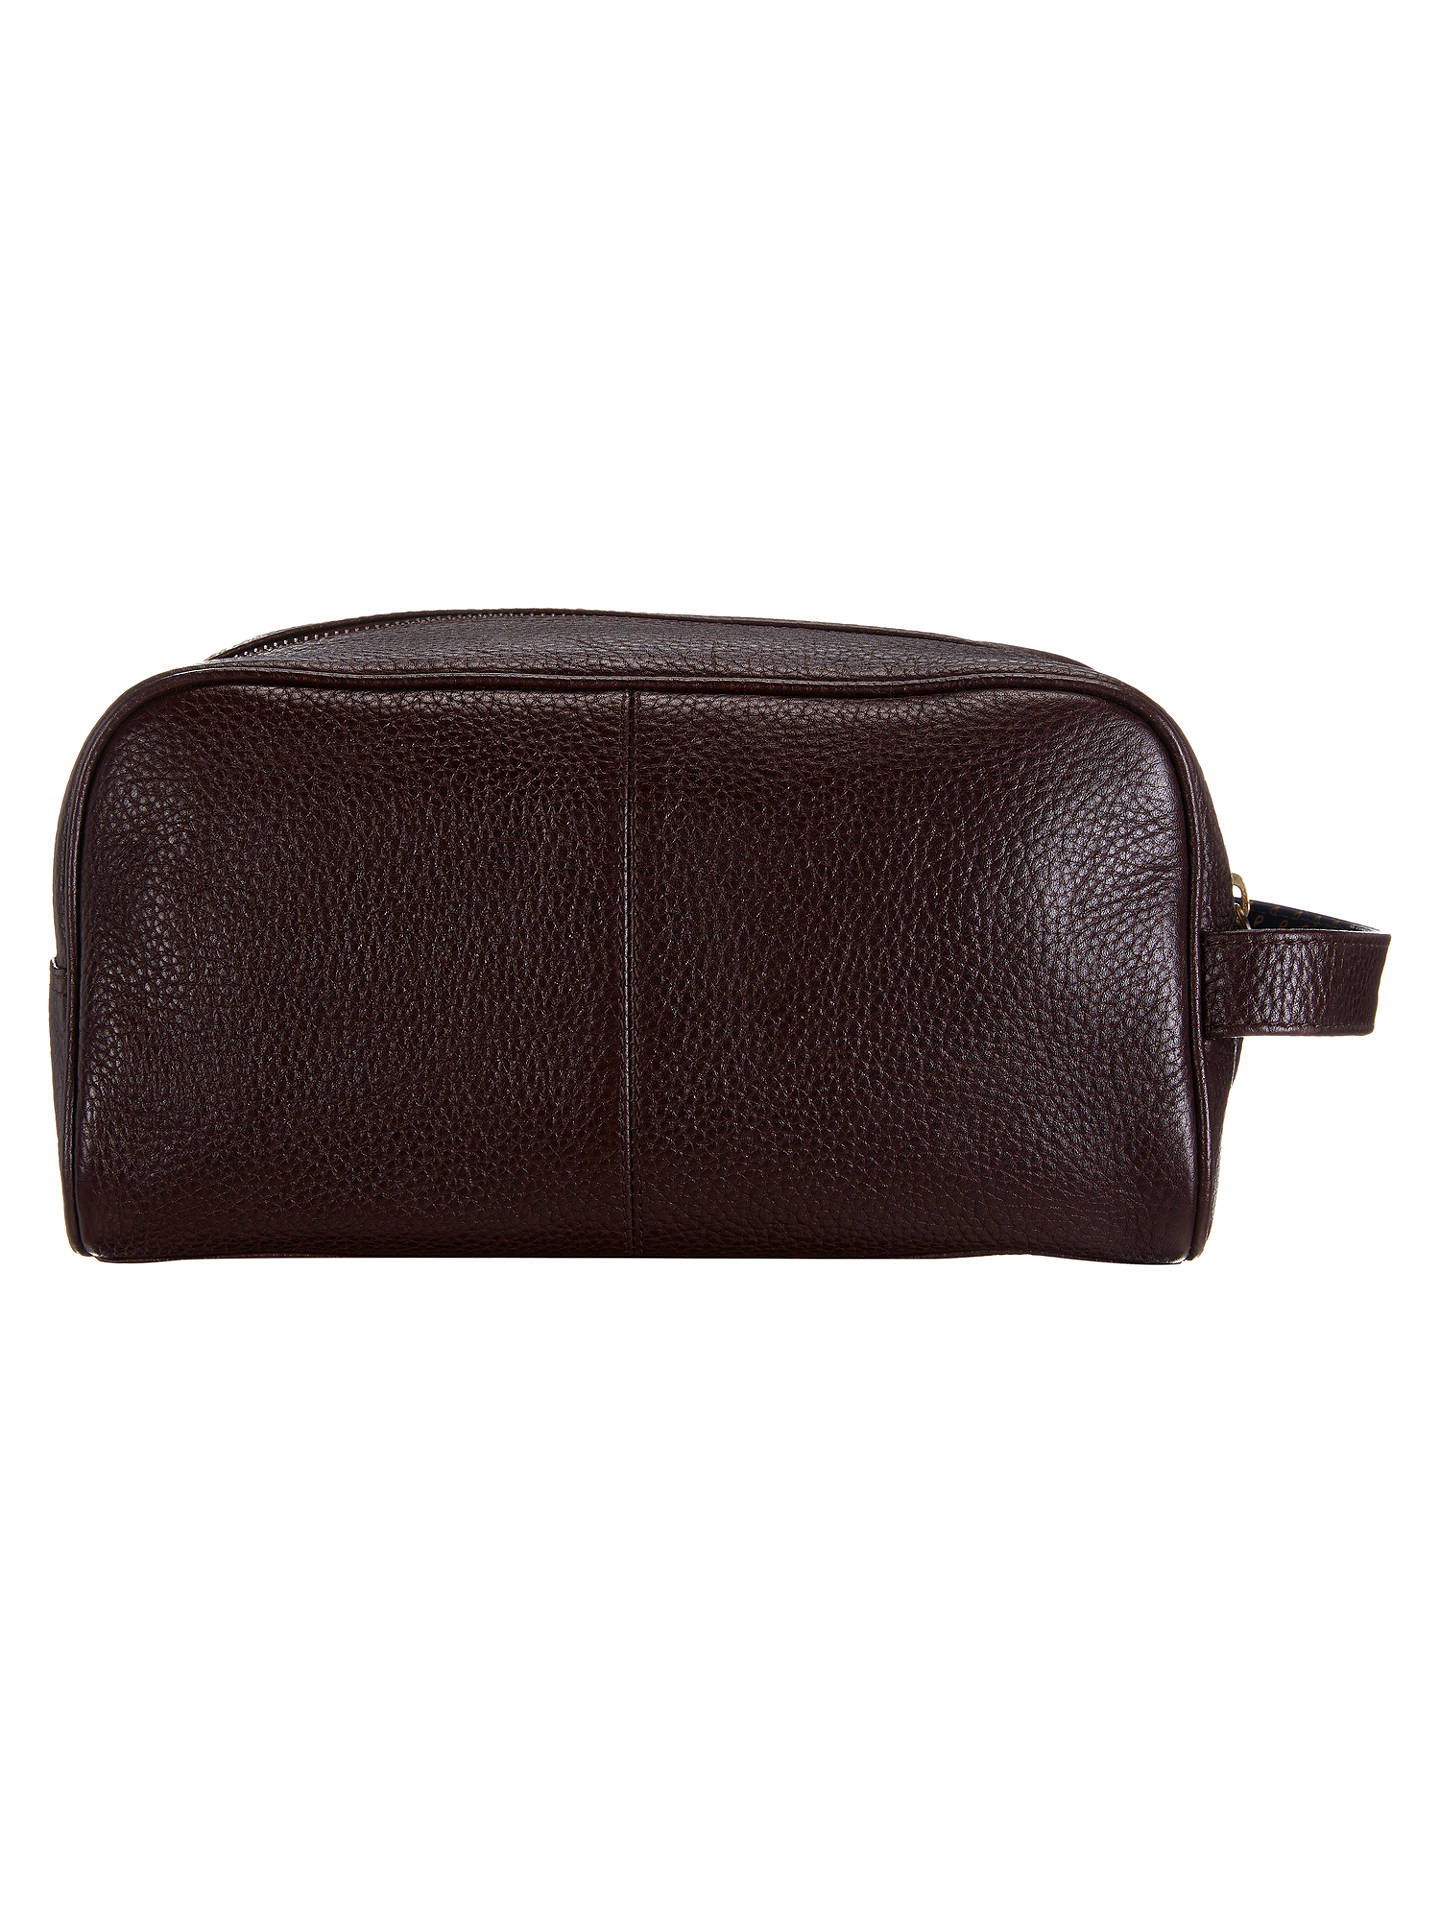 f027157f1d88 Buy John Lewis & Partners Katta Aniline Leather Wash Bag, Oxblood Online at  johnlewis.